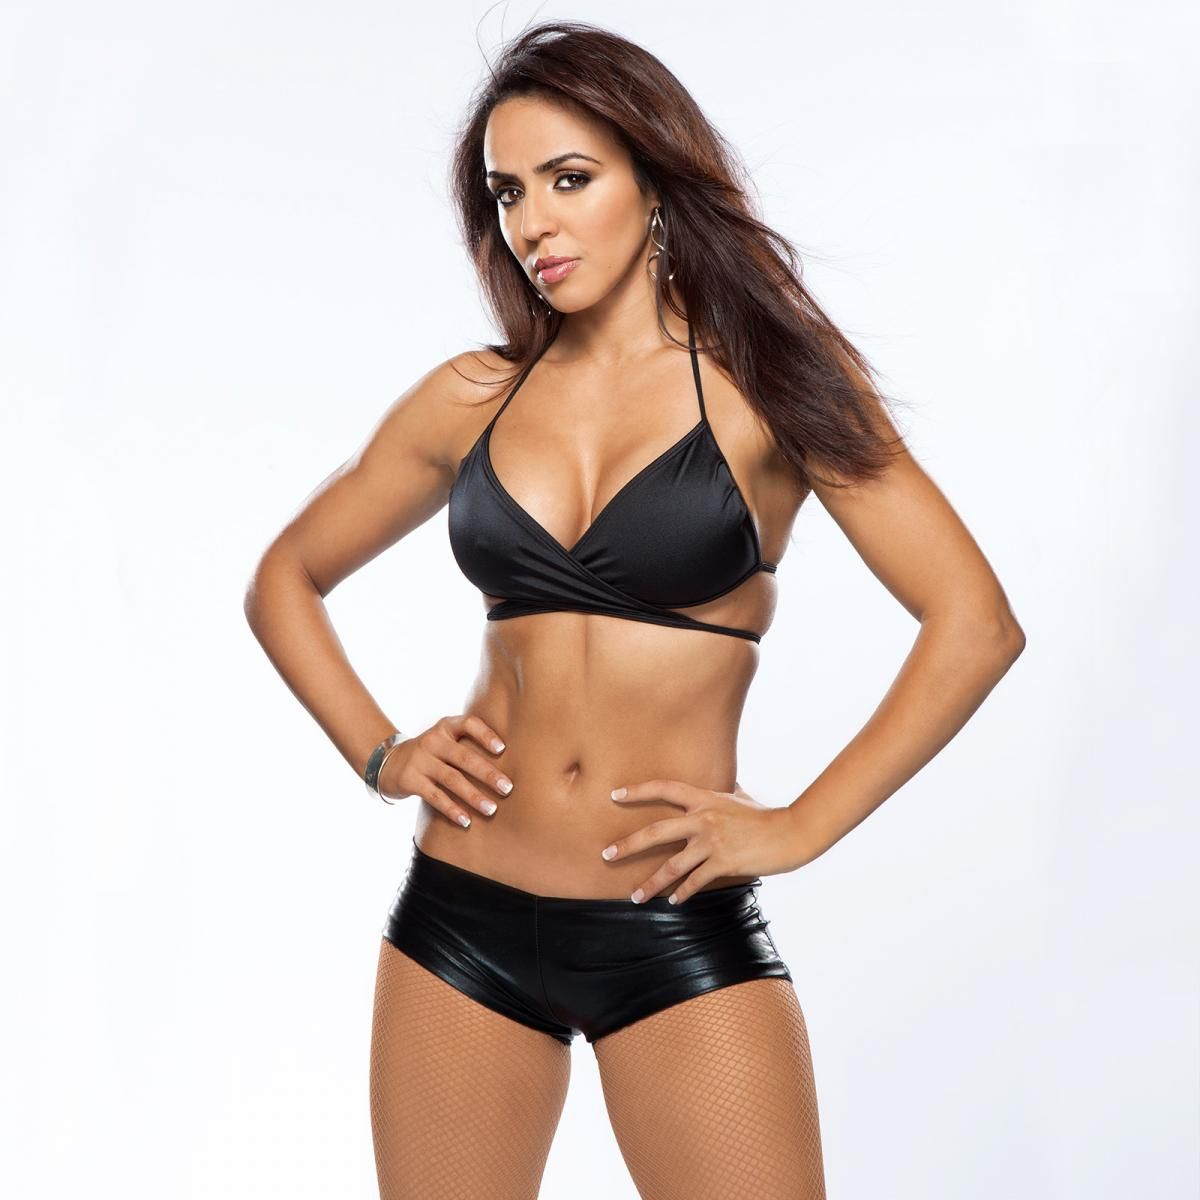 4761e348ae49a Check out these never-before-seen bikini photos from the WWE vault ...